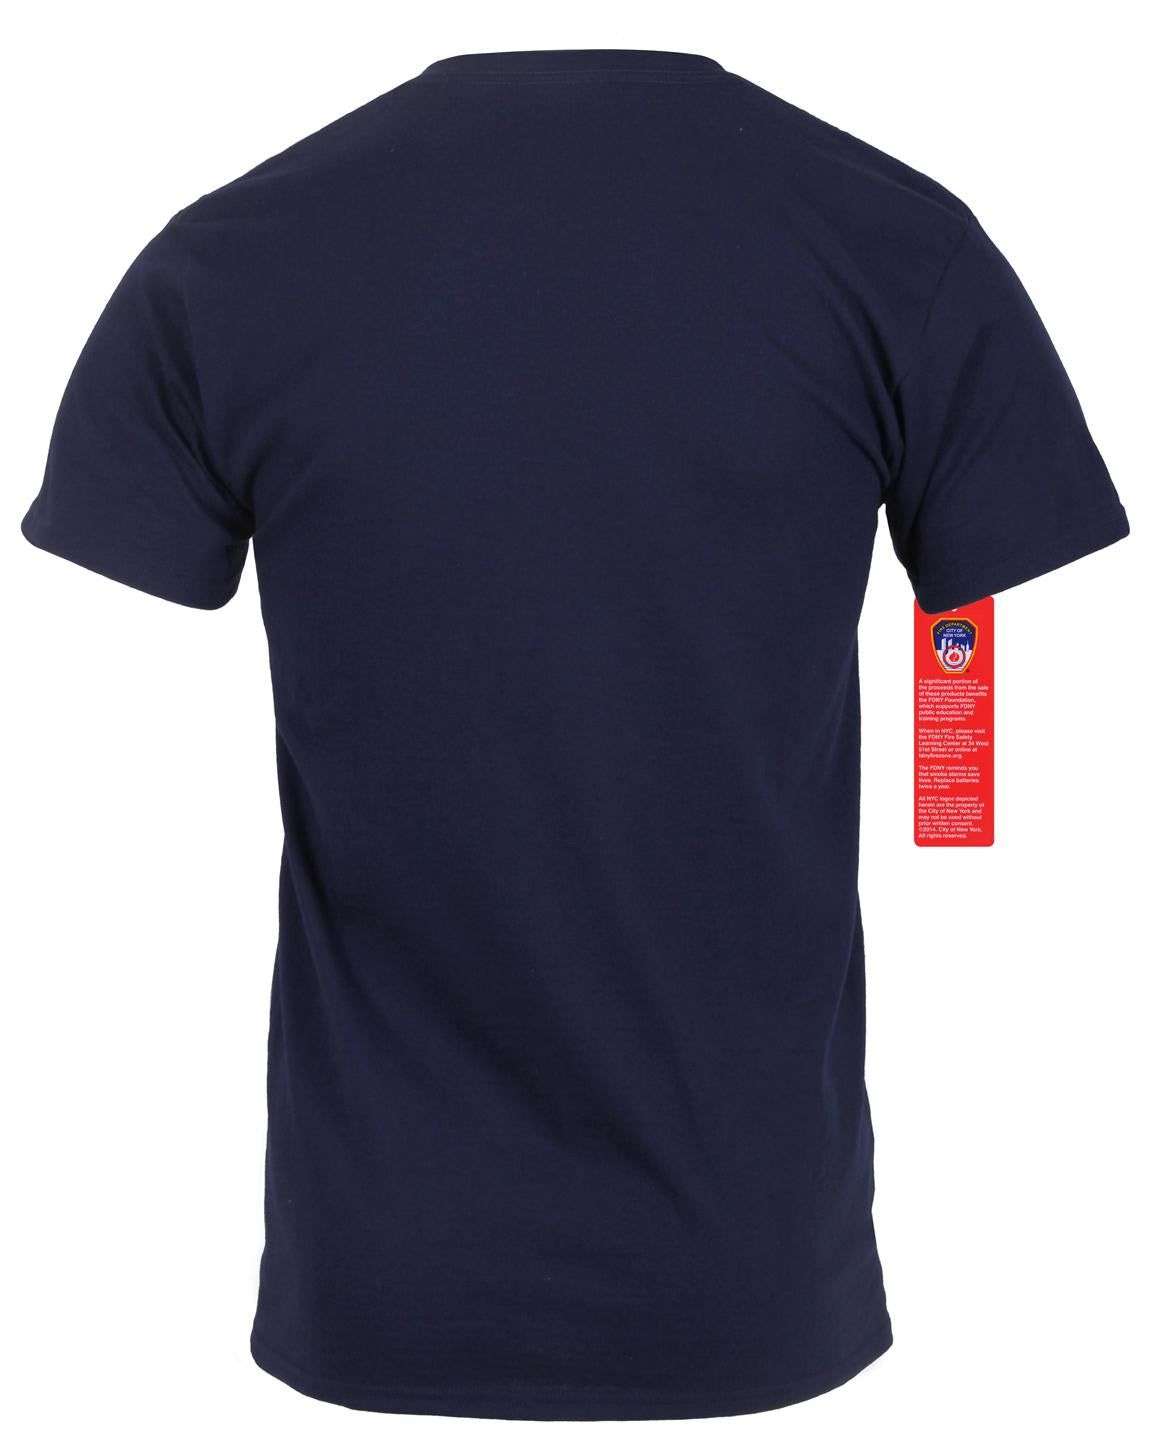 Officially Licensed FDNY T-shirt